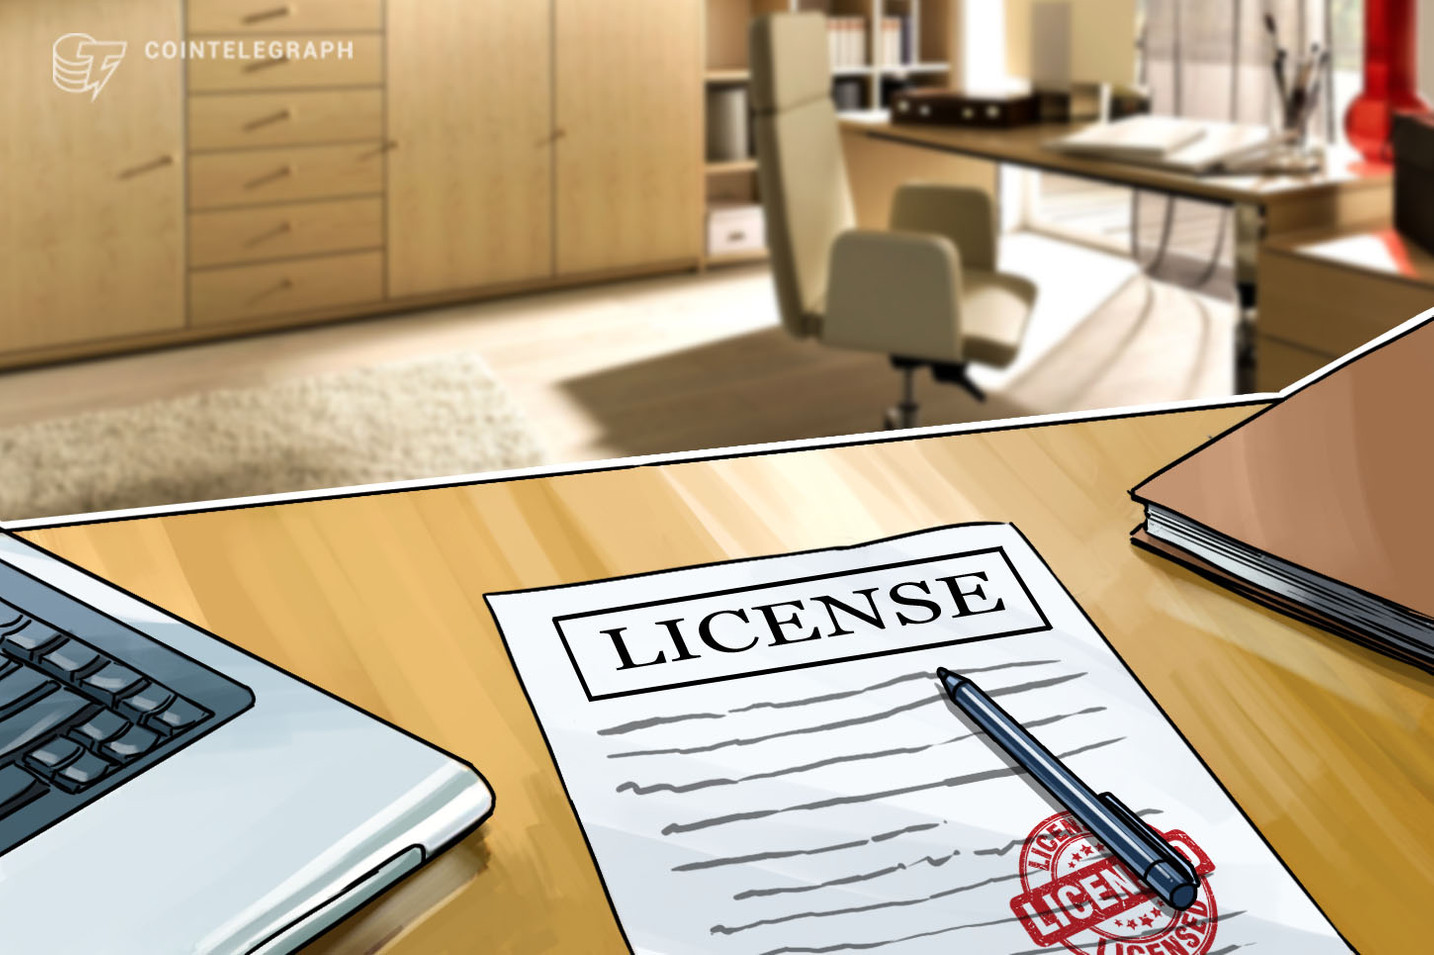 Dutch Central Bank Proposes License Requirement for Cryptocurrency Service Providers